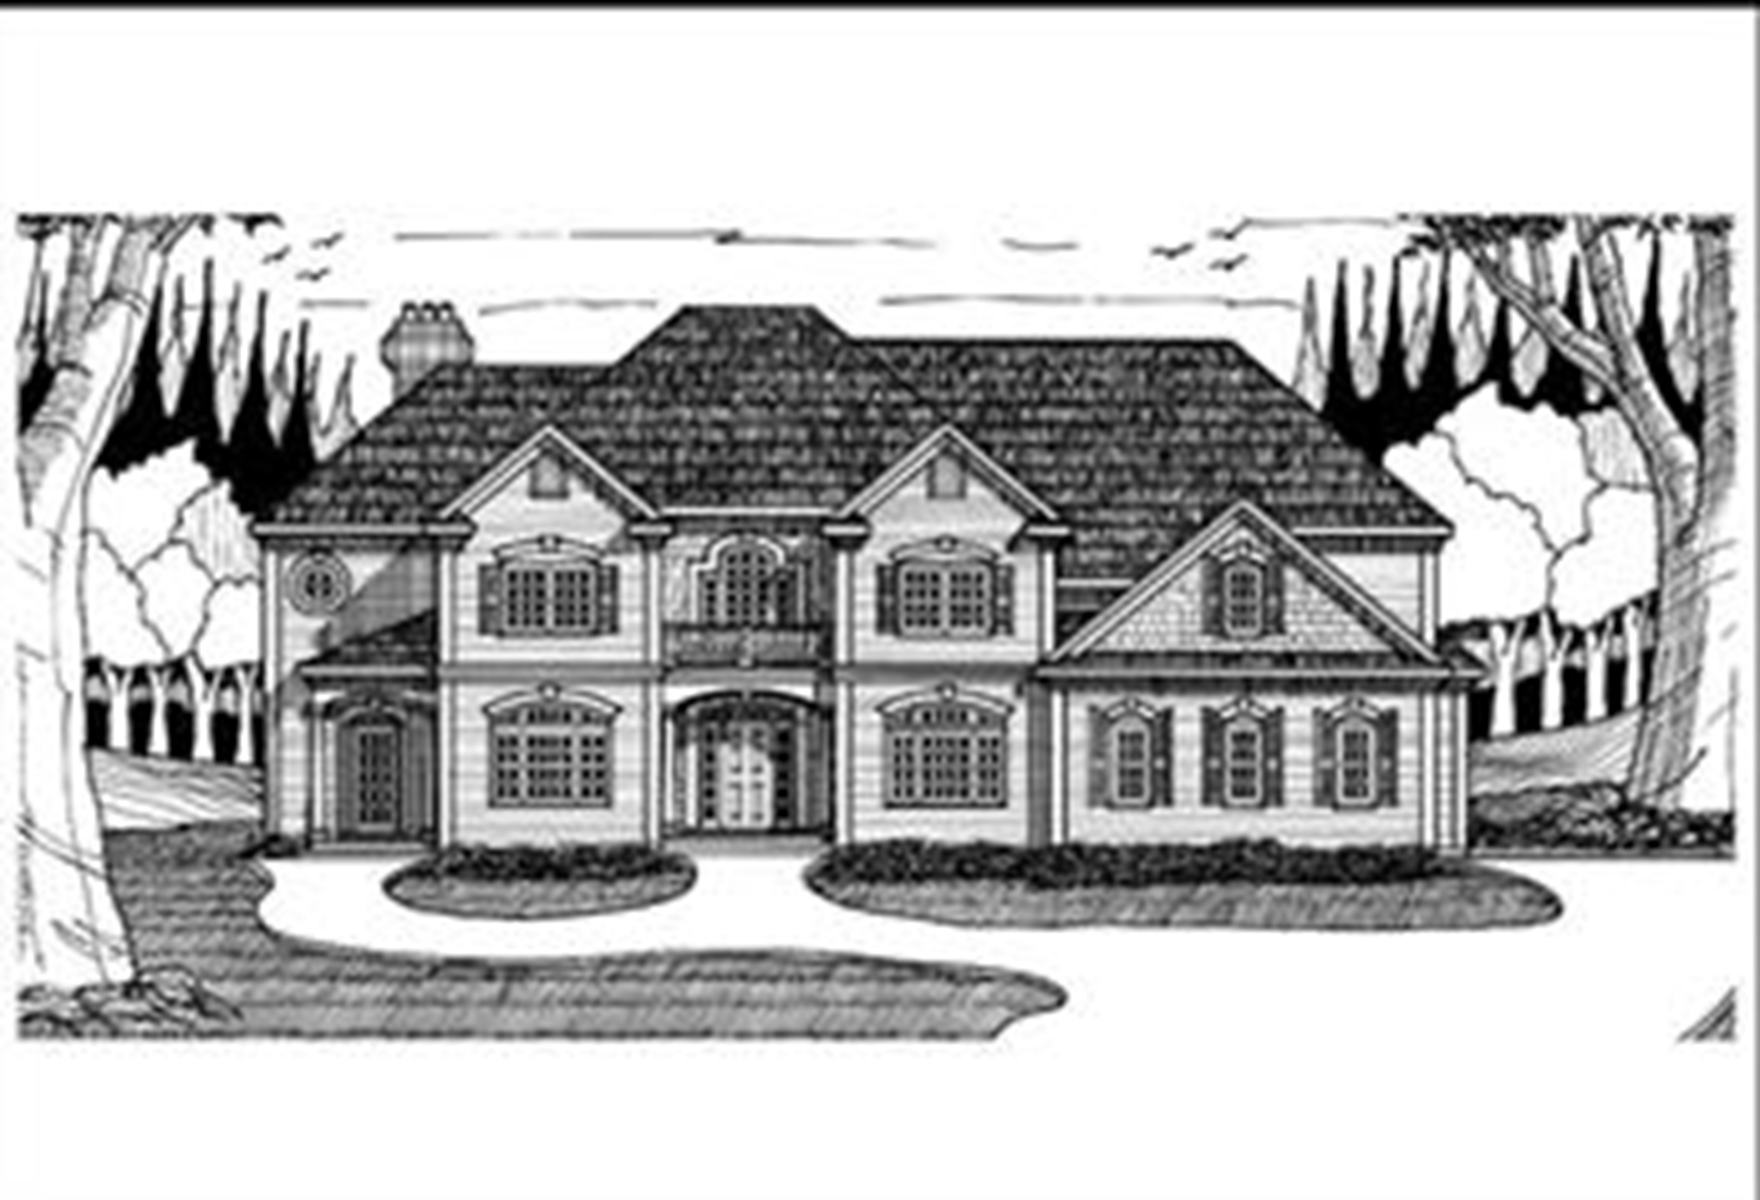 Casa Unifamiliar por un Venta en Highland Park New Construction Harrison Model Lot 20 Stoney Brook Road Hopkinton, Massachusetts 01748 Estados Unidos